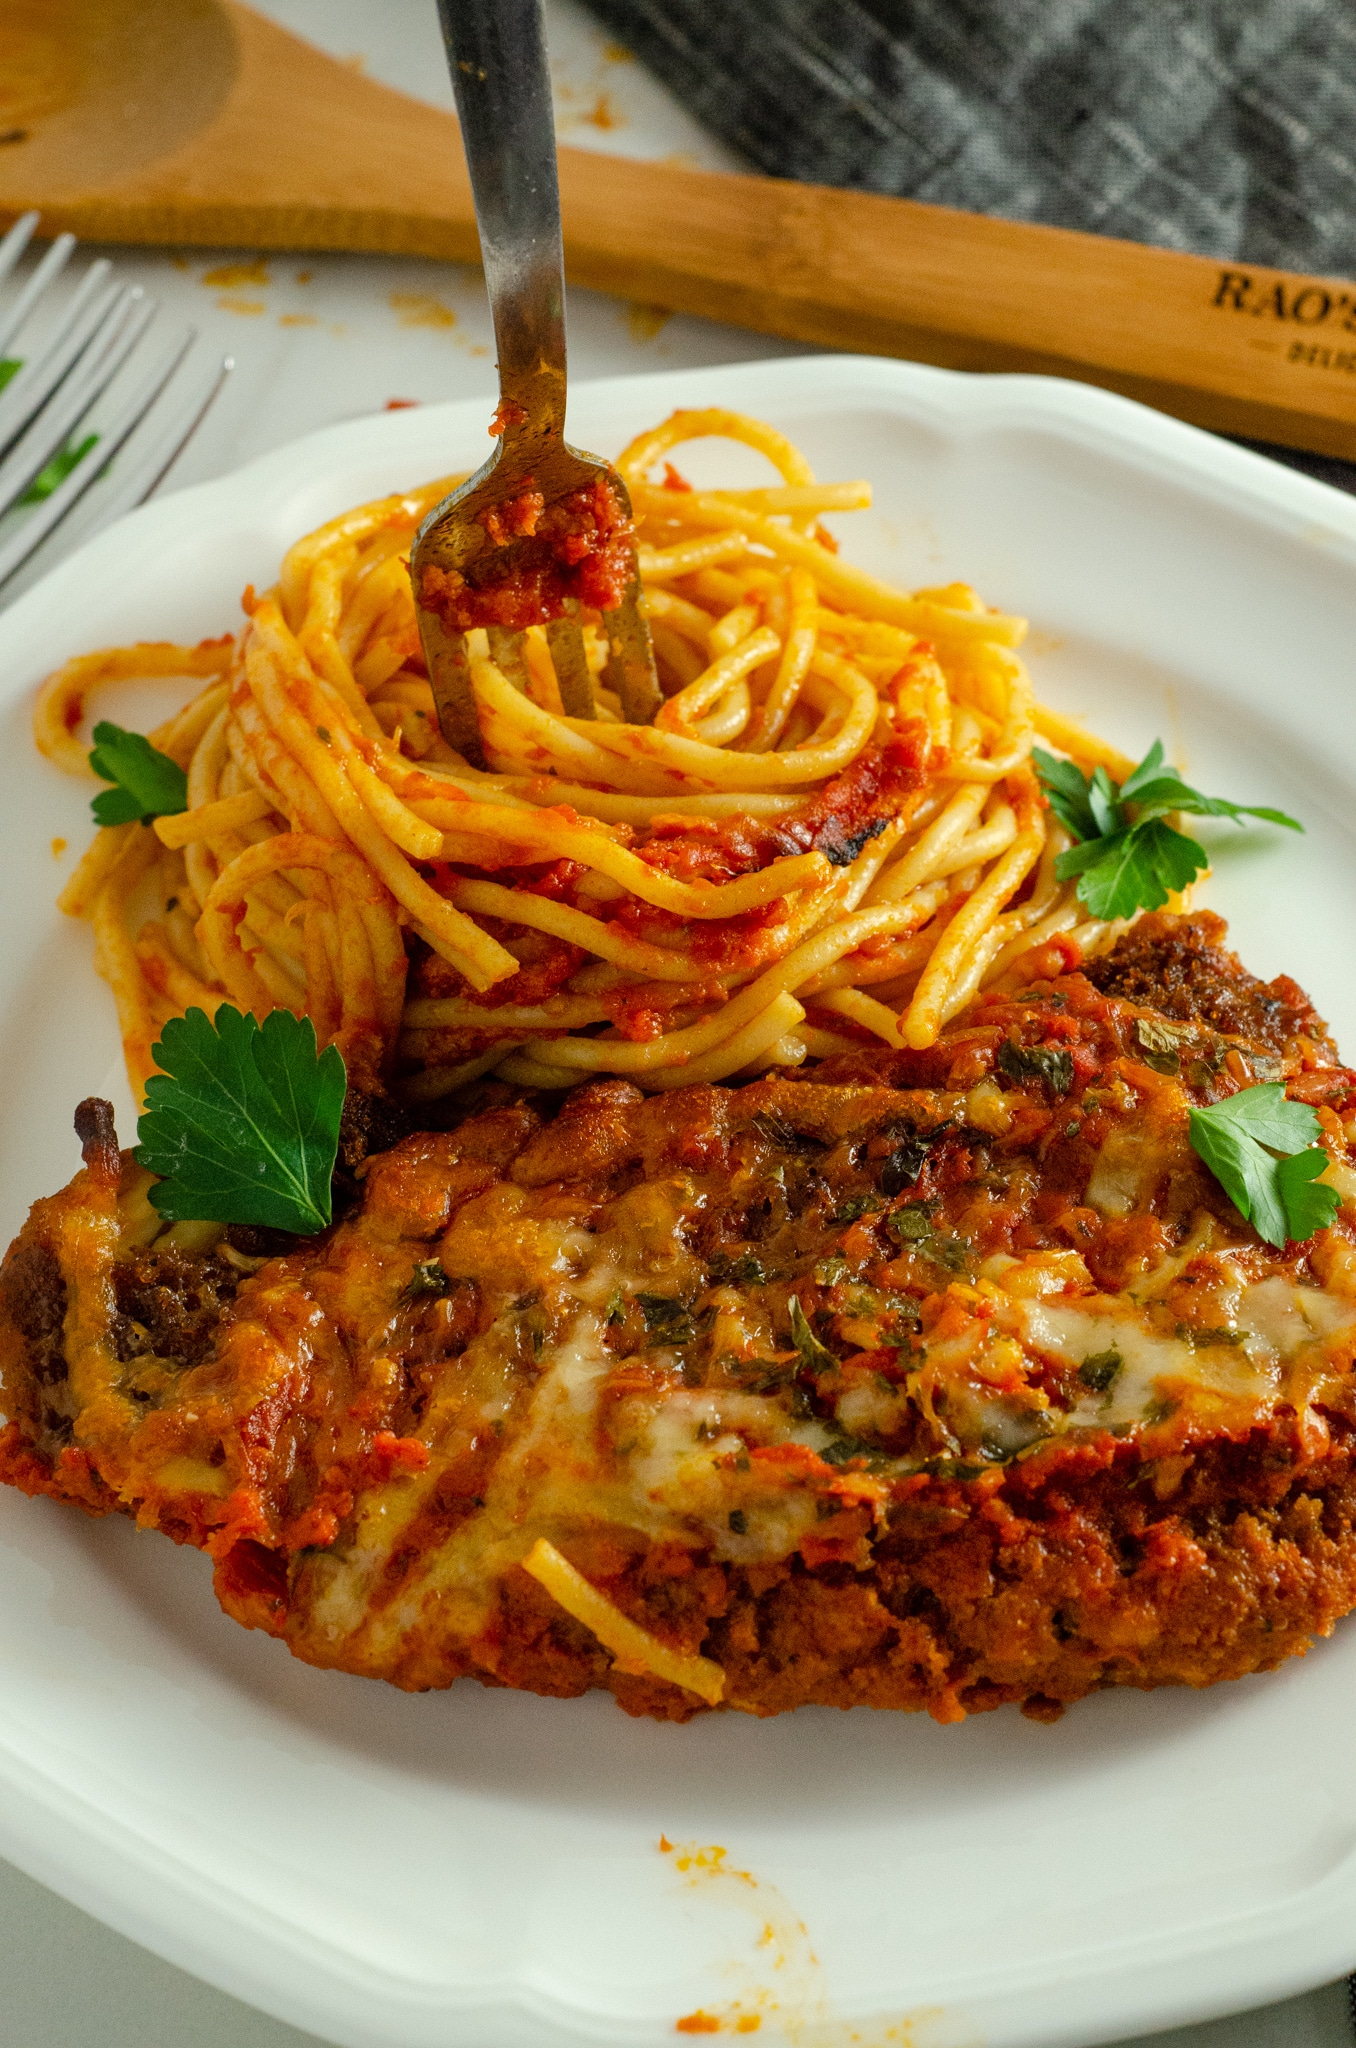 Rao's Chicken Parmesan. March is National Frozen Food Month and what better way to celebrate it by shopping for your favorite frozen food brands at your local Harris Teeter. Grab this and other wonderful frozen food products in the freezer asile.